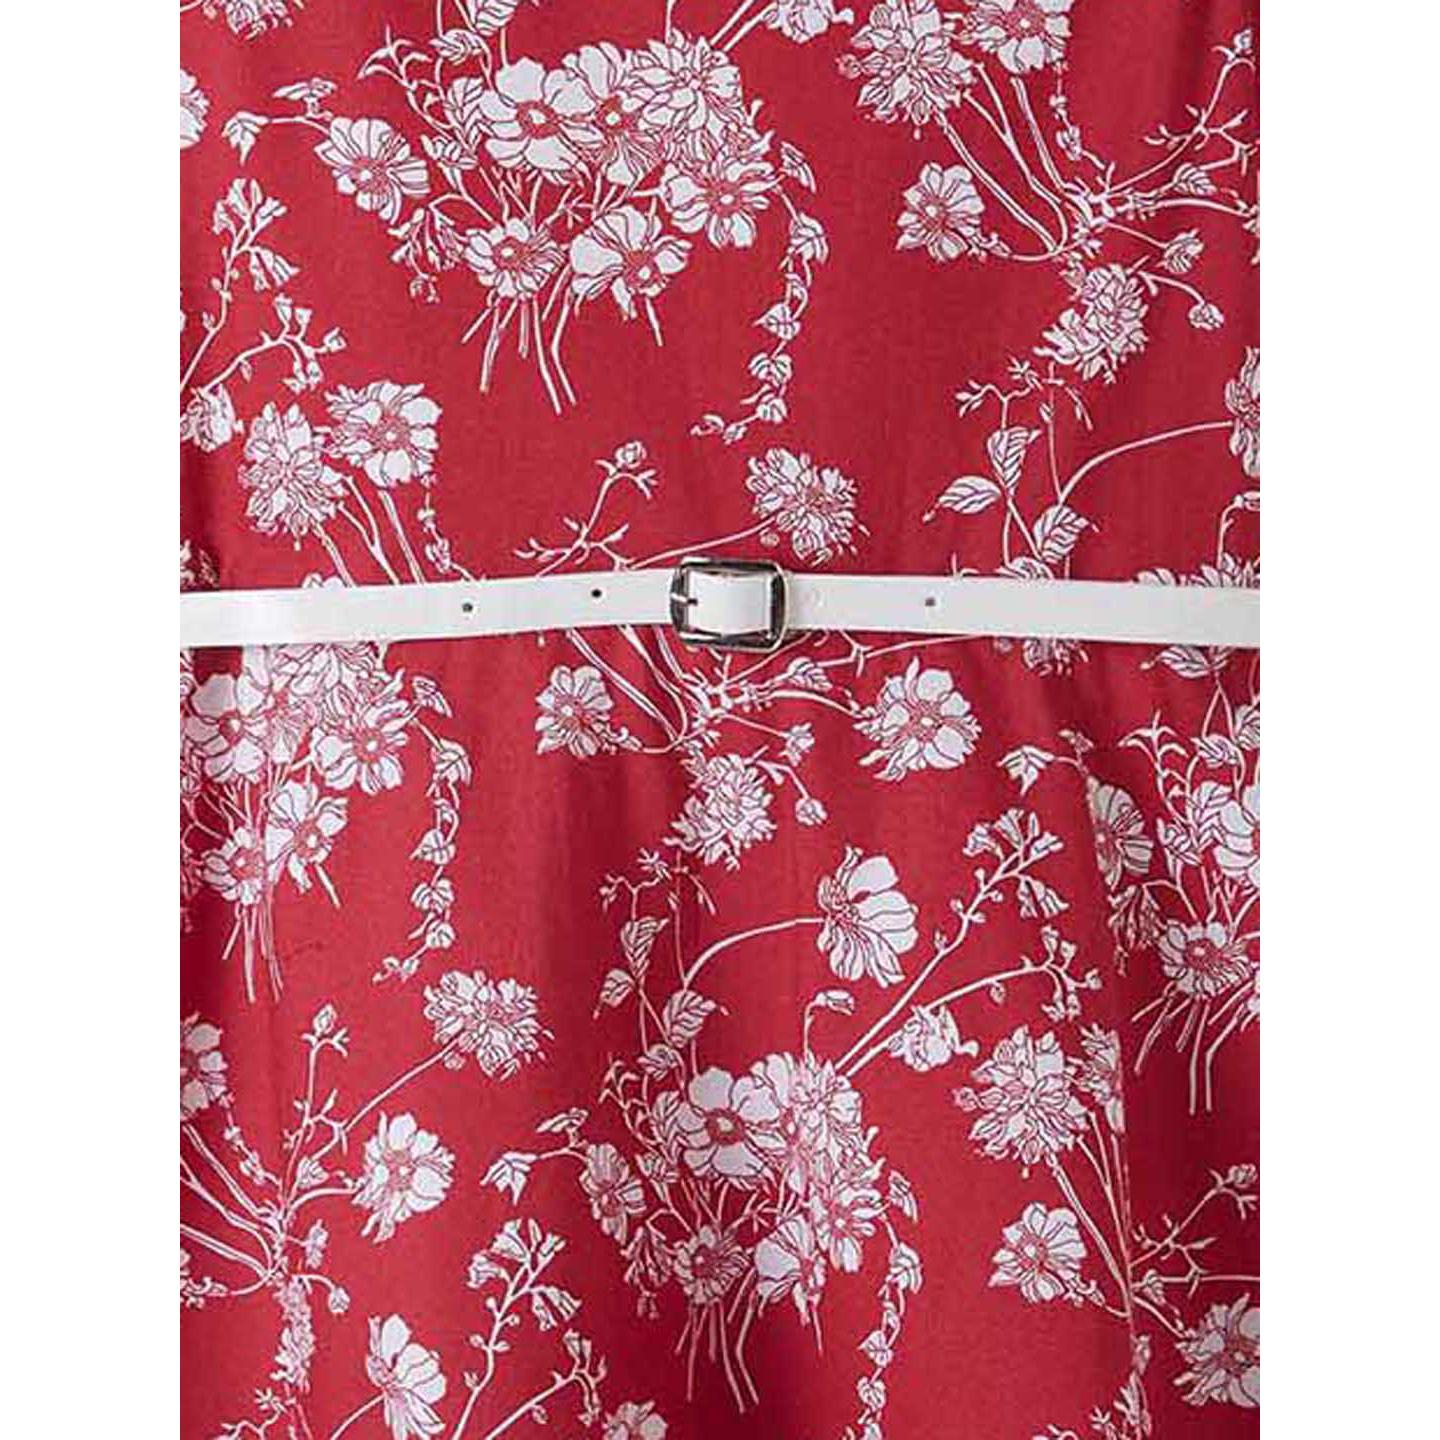 Powderfly Girls Maroon Colored Floral Printed Cotton Dress